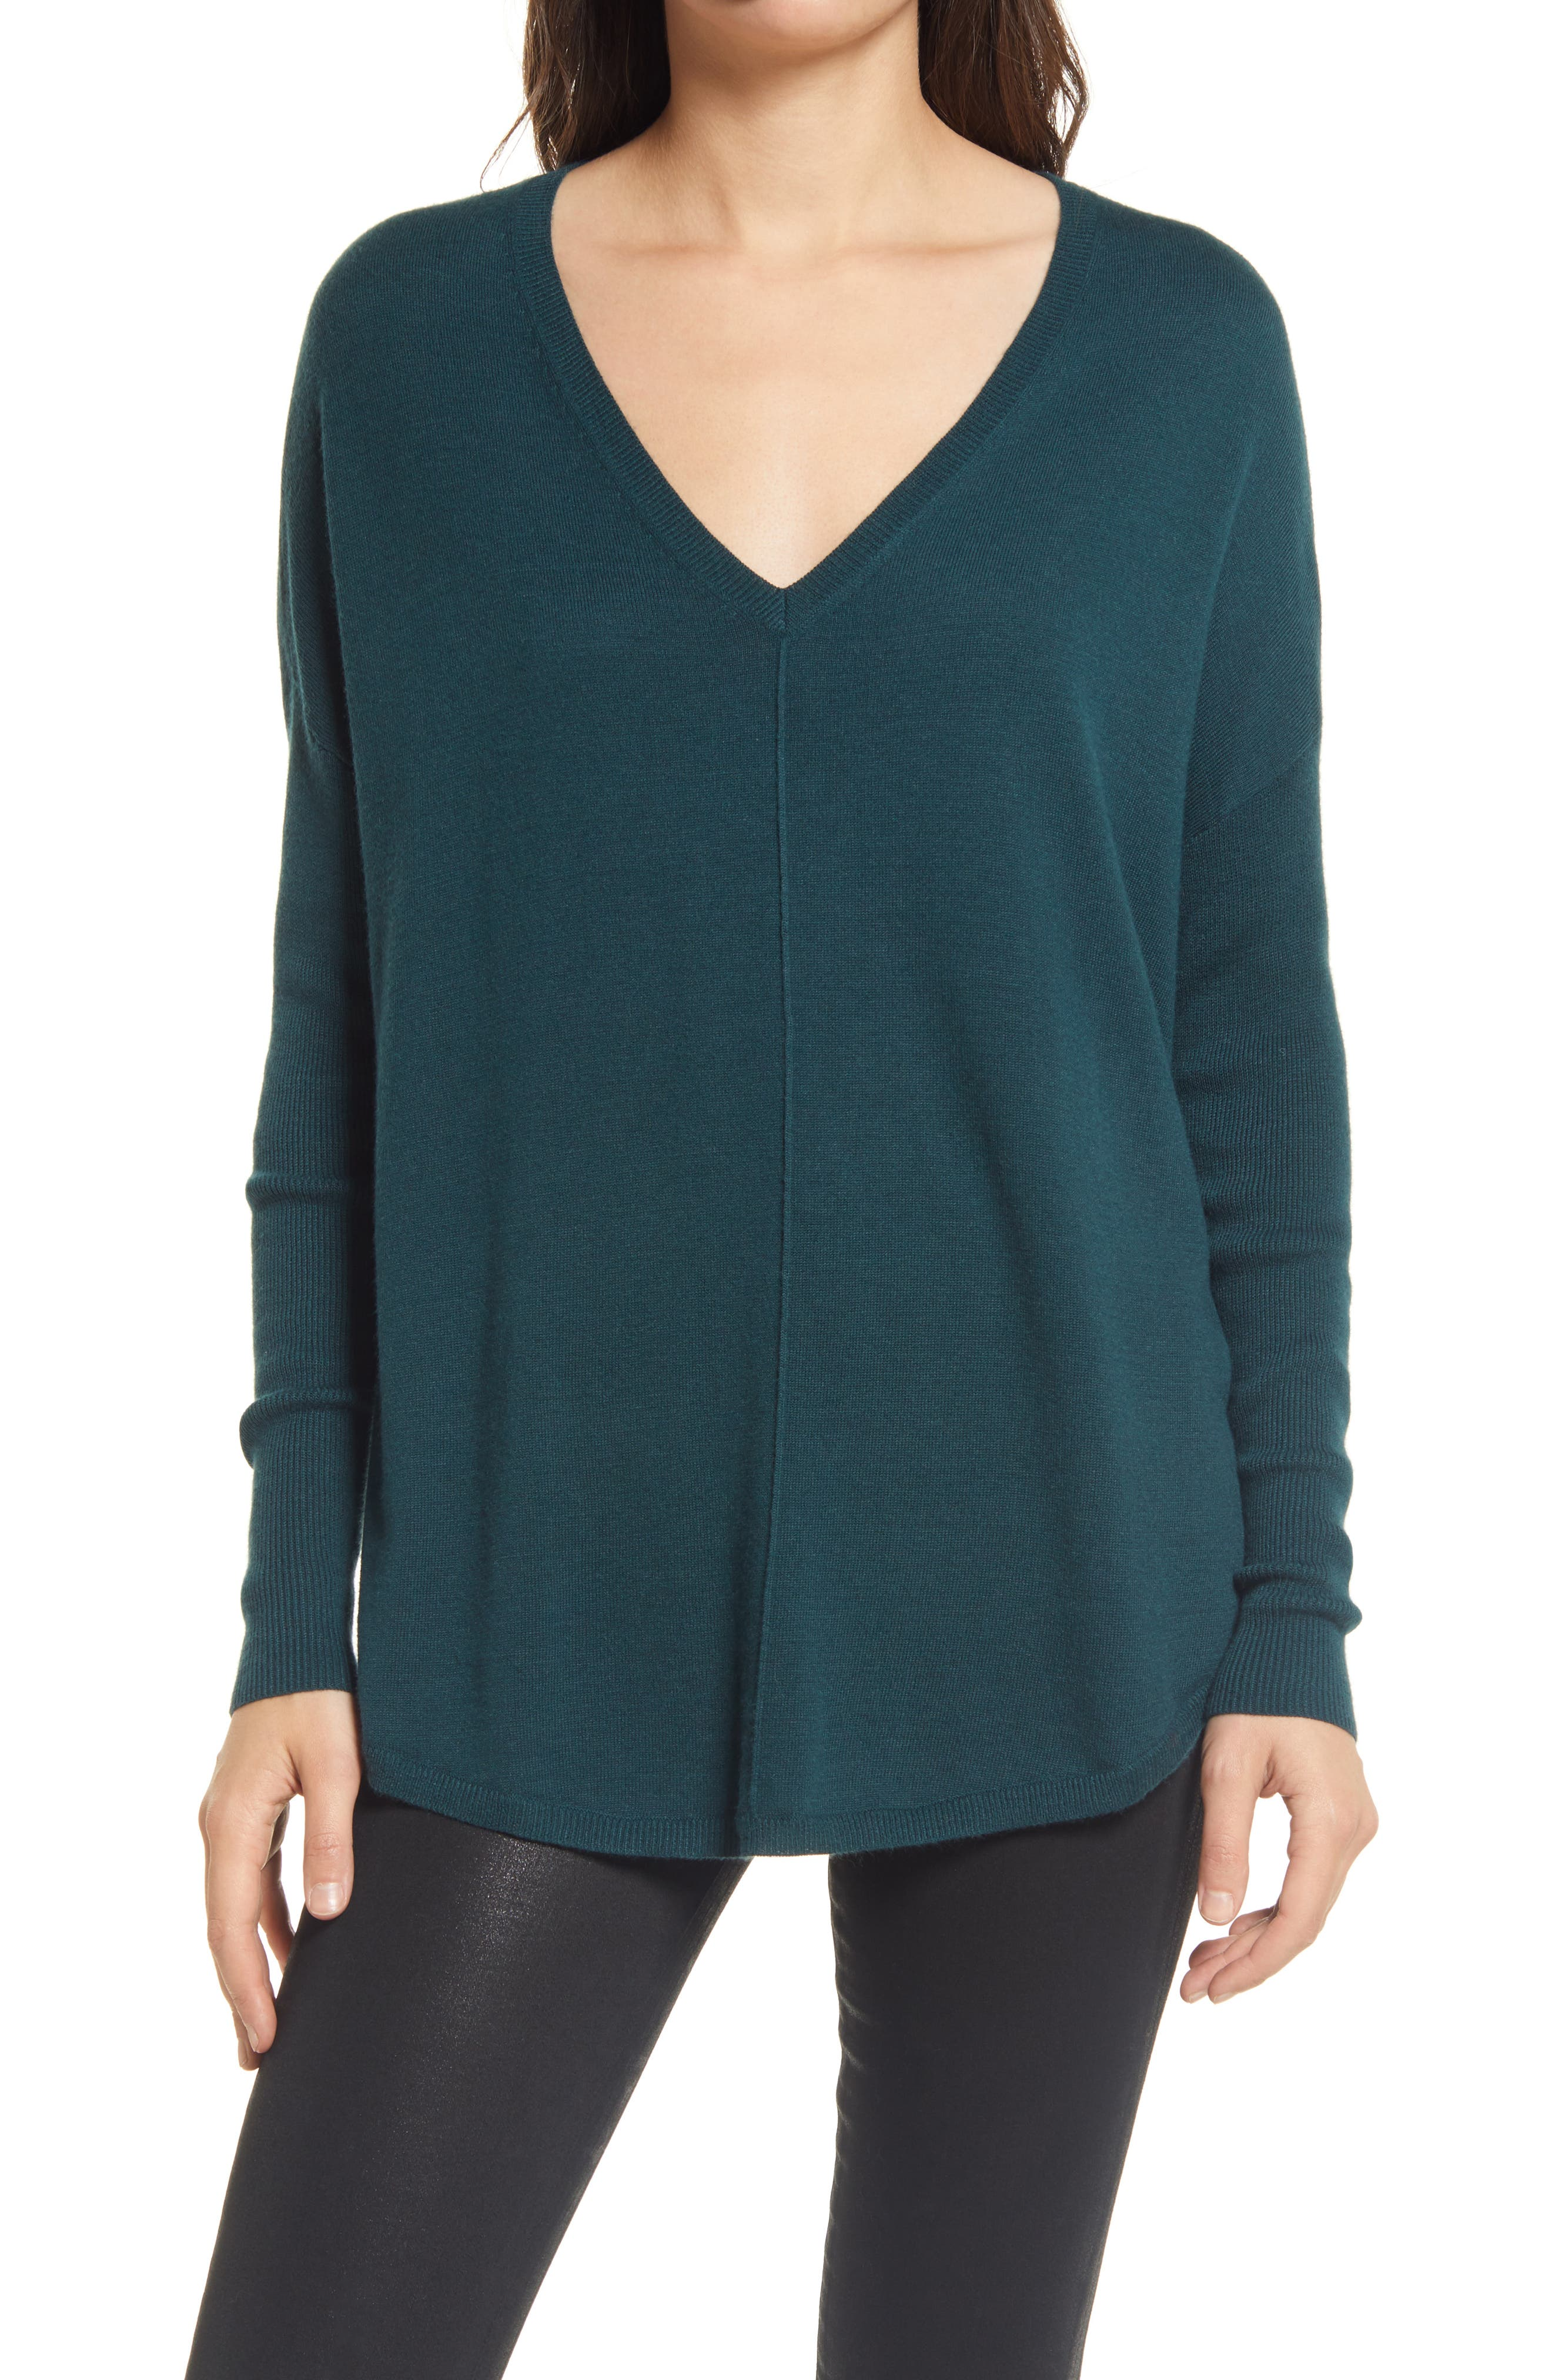 A relaxed silhouette lends everyday ease to a cashmere-kissed sweater styled with fitted rib-knit sleeves and an elegant V-neckline. Style Name: Chelsea28 Everyday V-Neck Sweater. Style Number: 1031893. Available in stores.